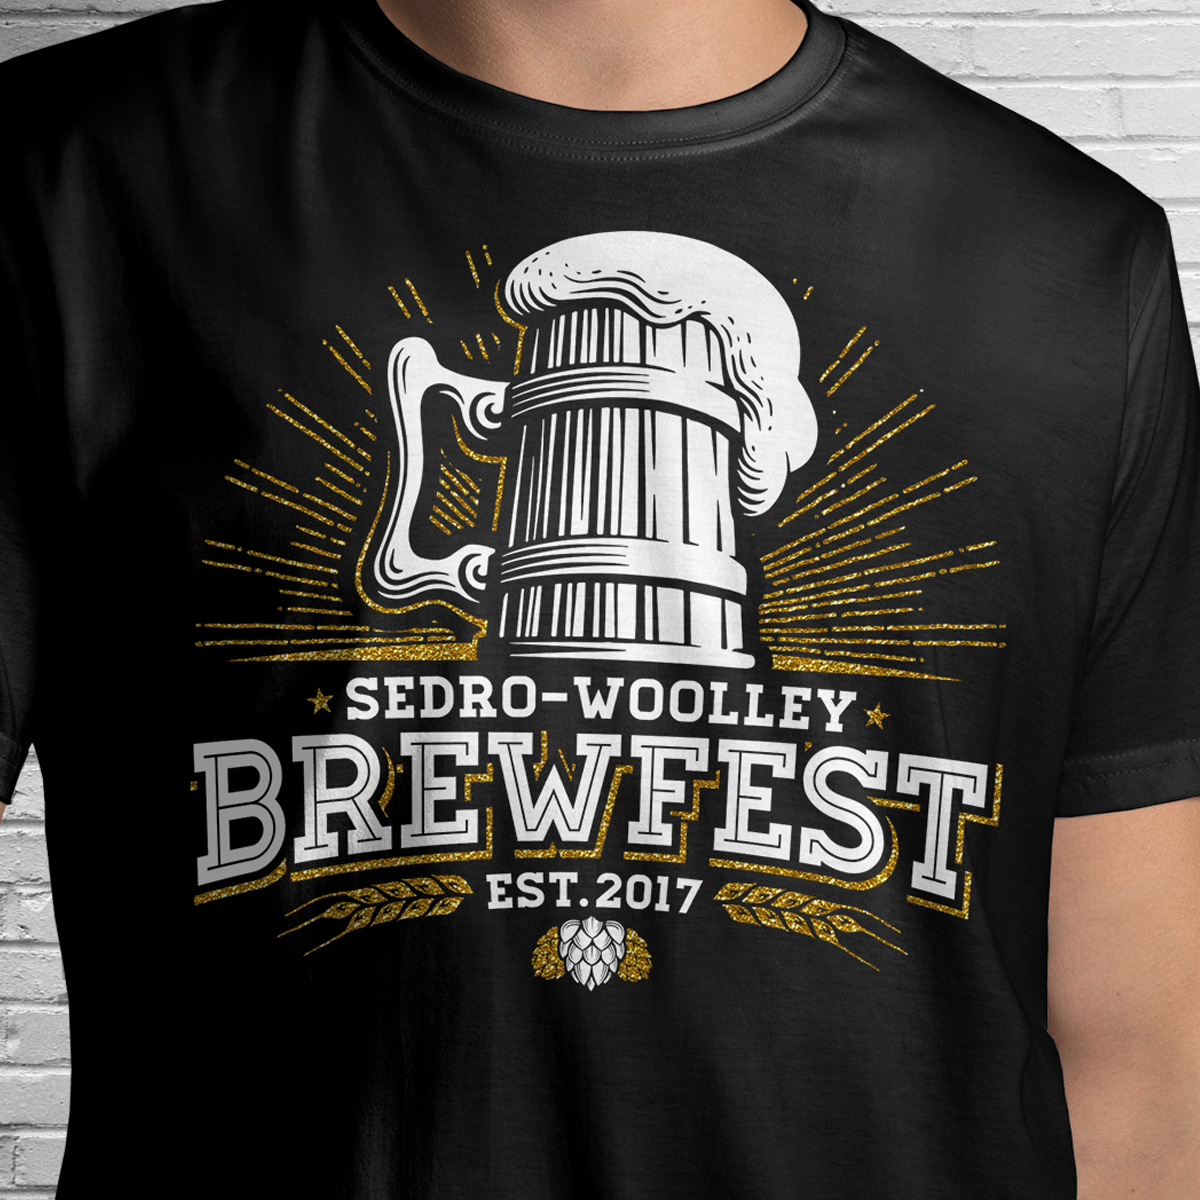 Each ticket purchased includes a Limited Edition VIP Brewfest T-Shirt!